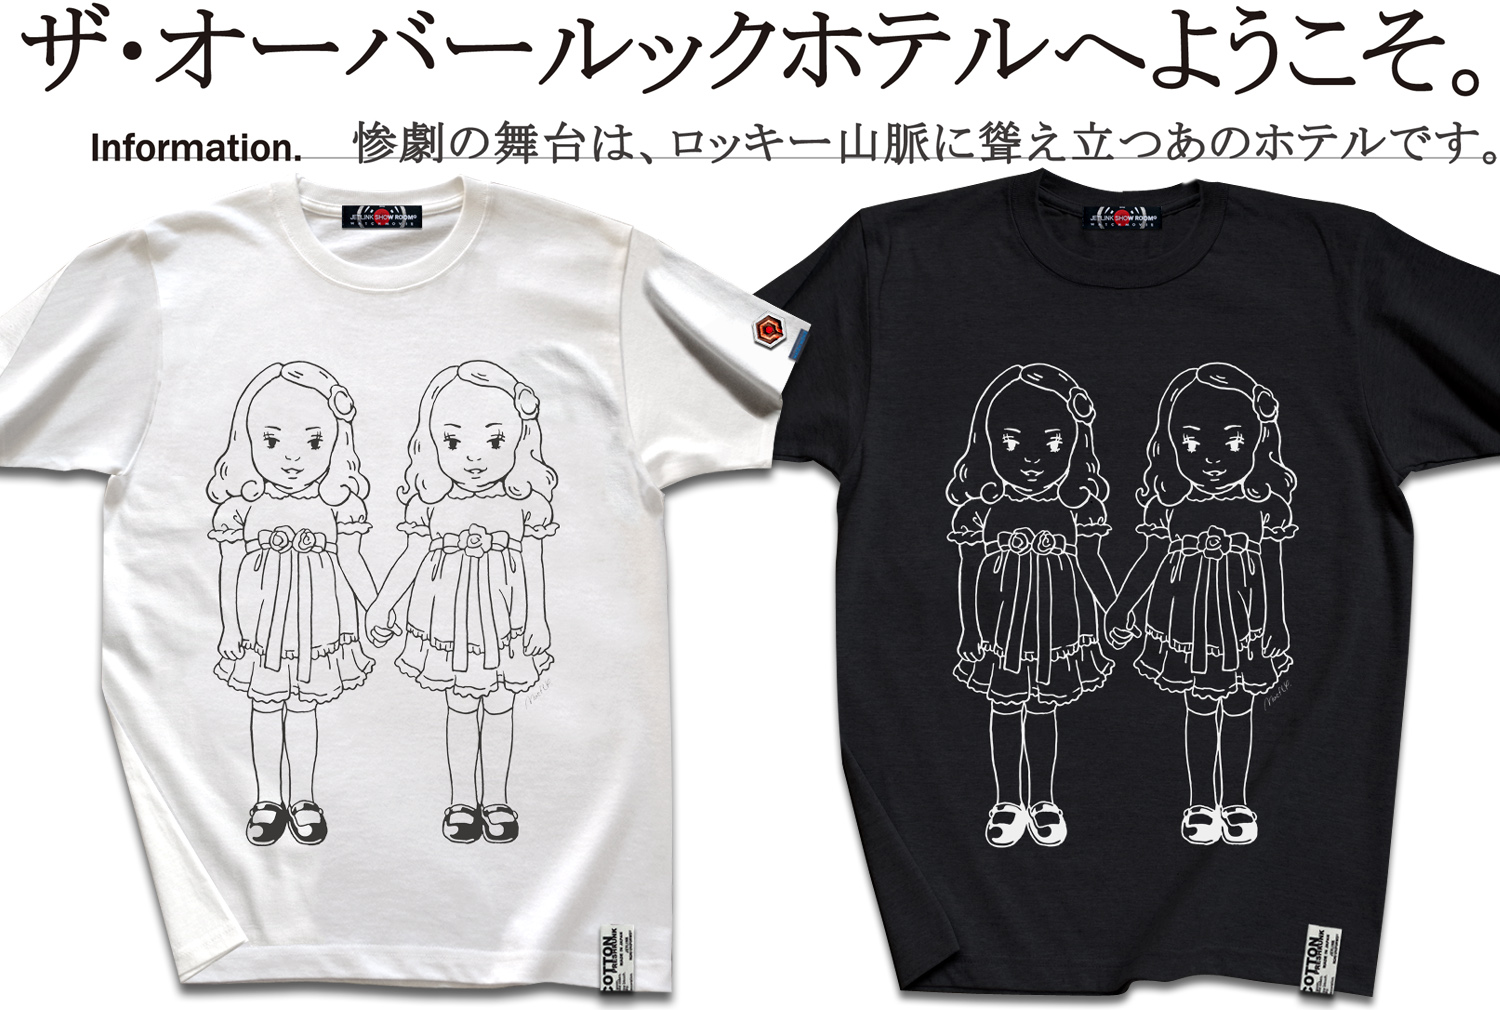 THE OVERLOOK TWINS Tシャツ